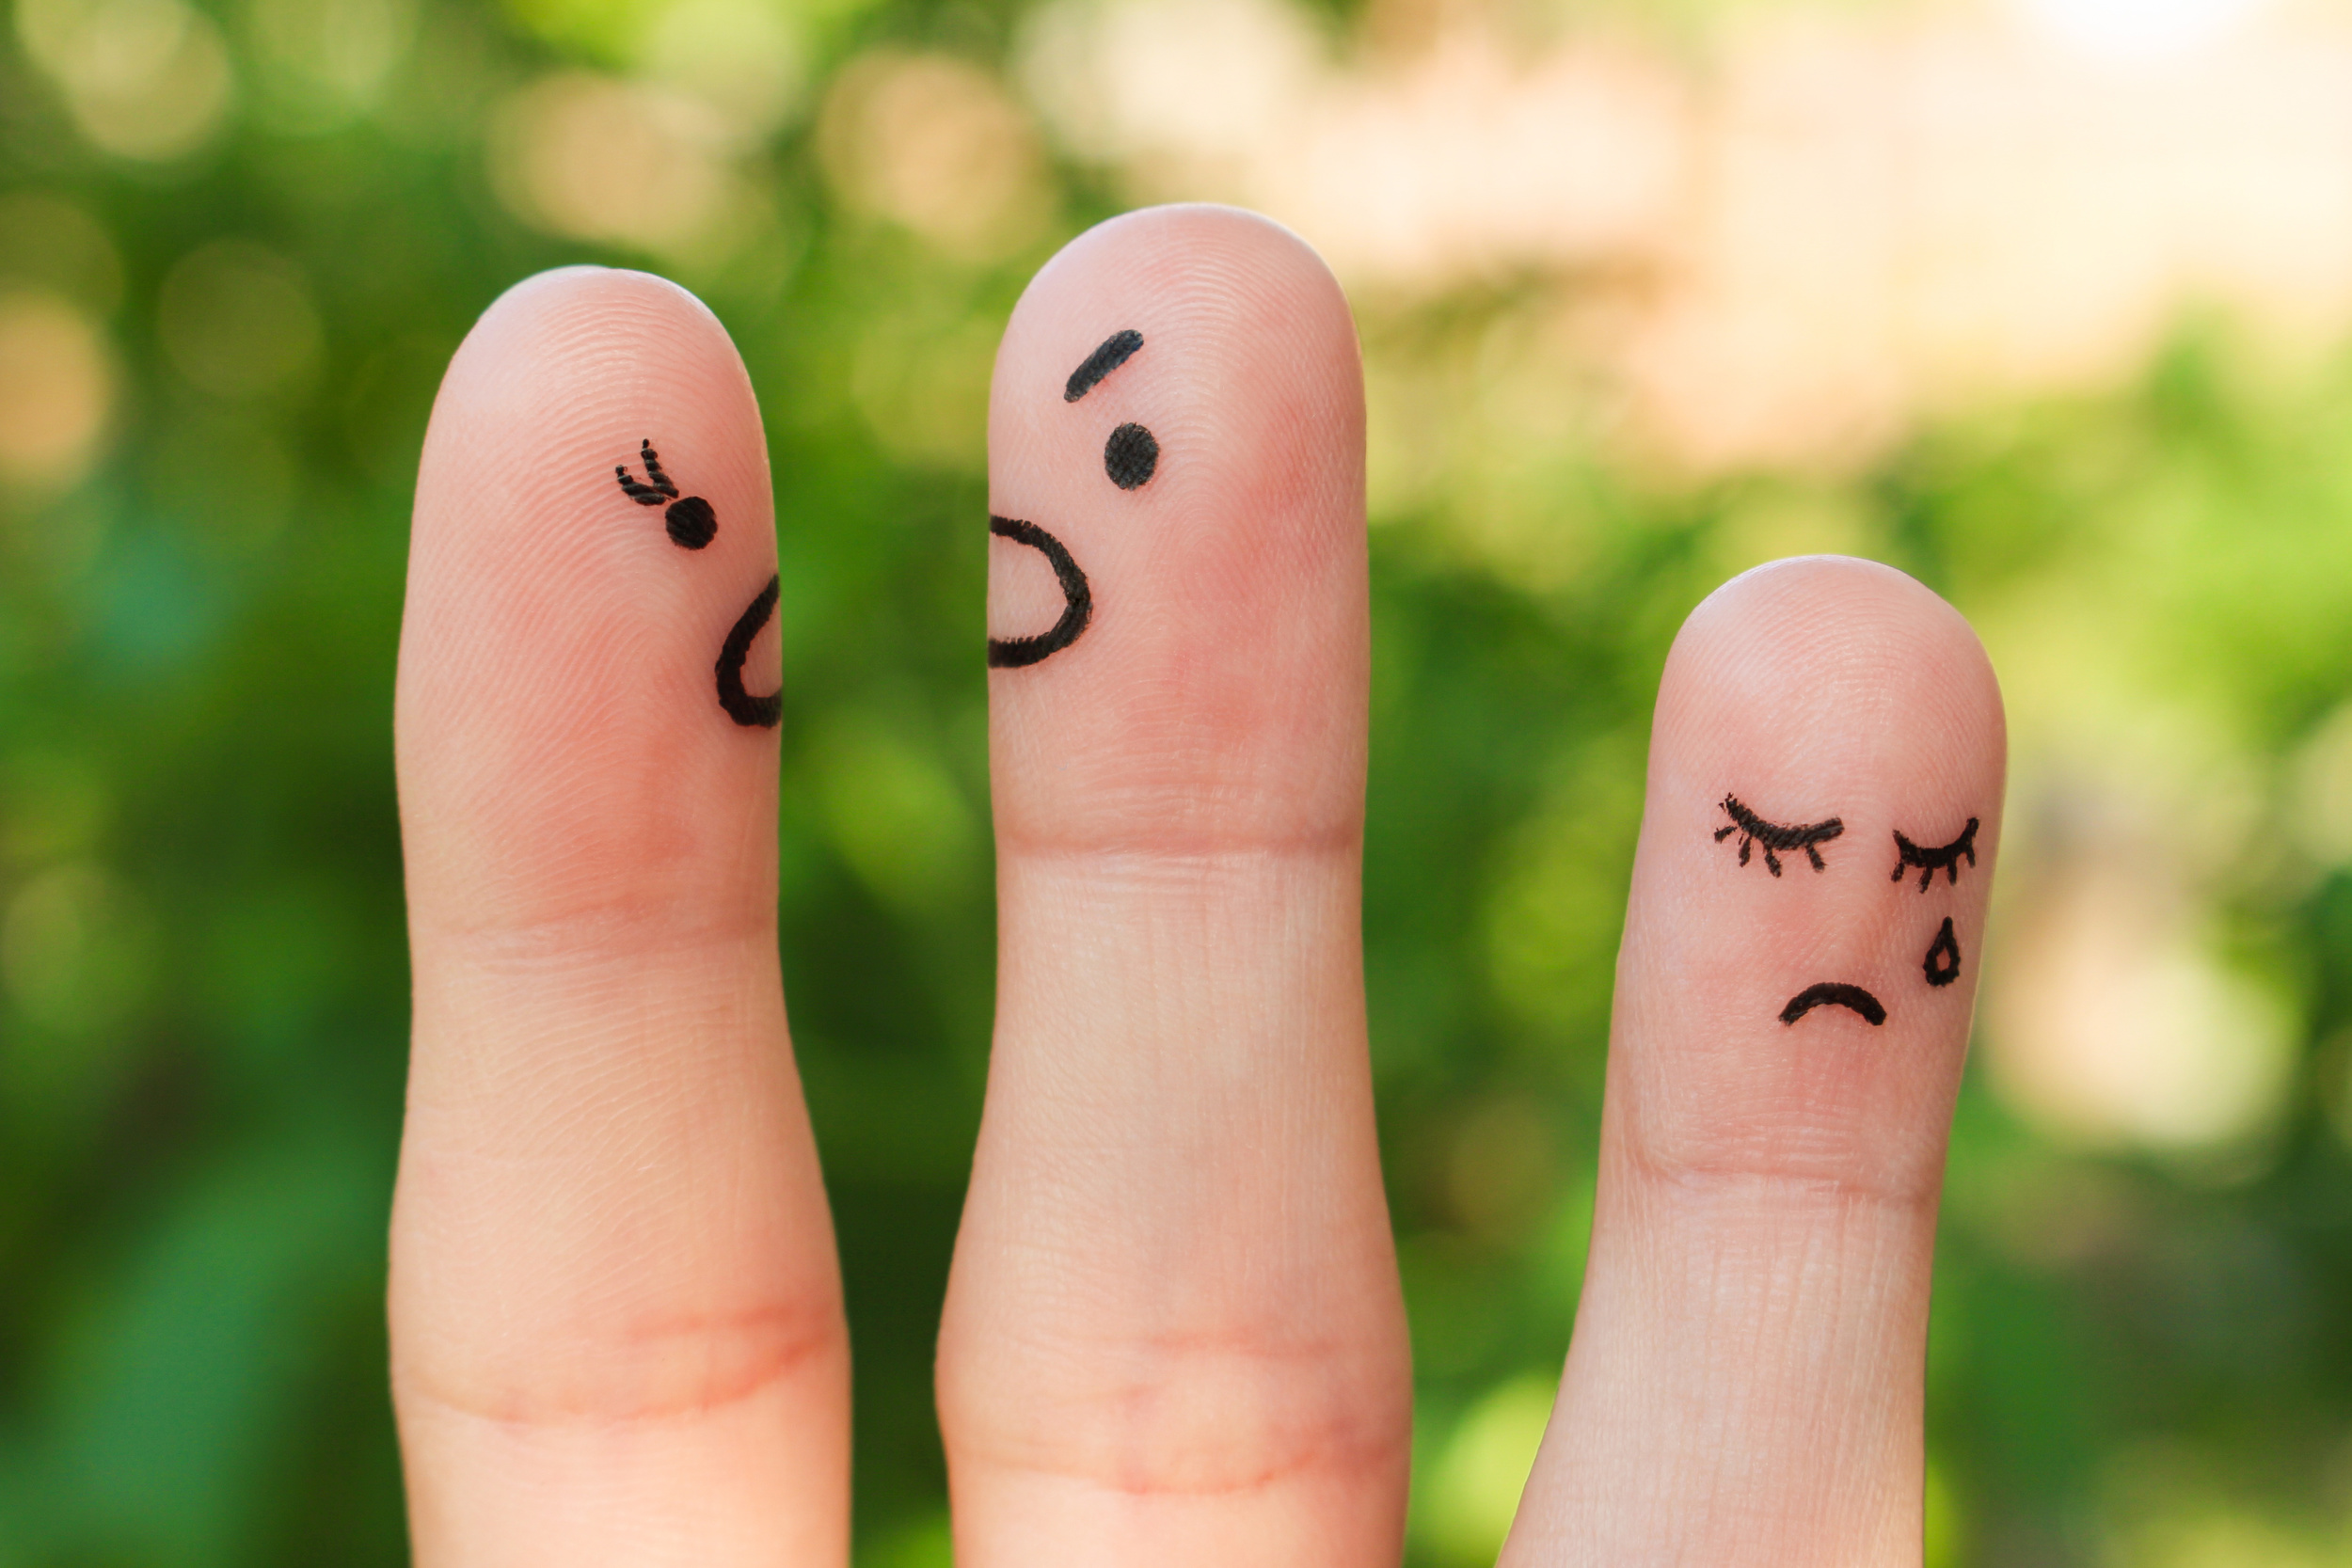 Emotions at our finger tips